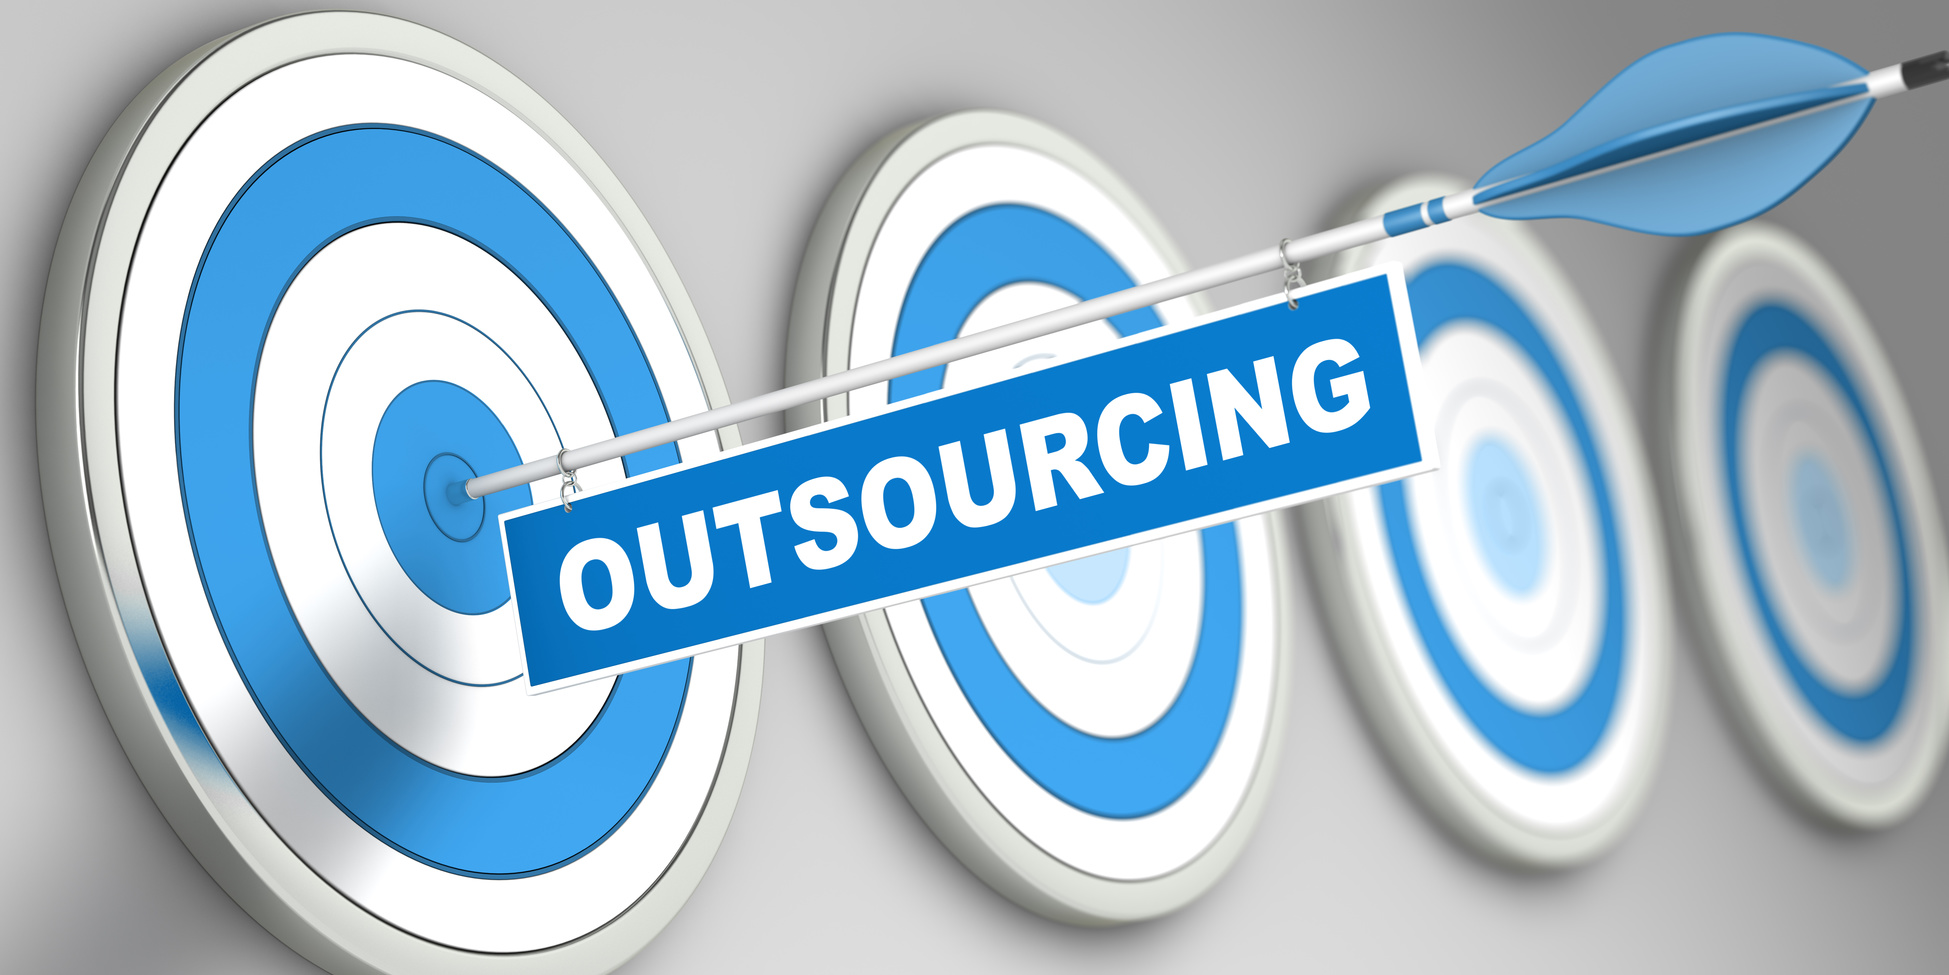 Descubra O Que é Outsourcing